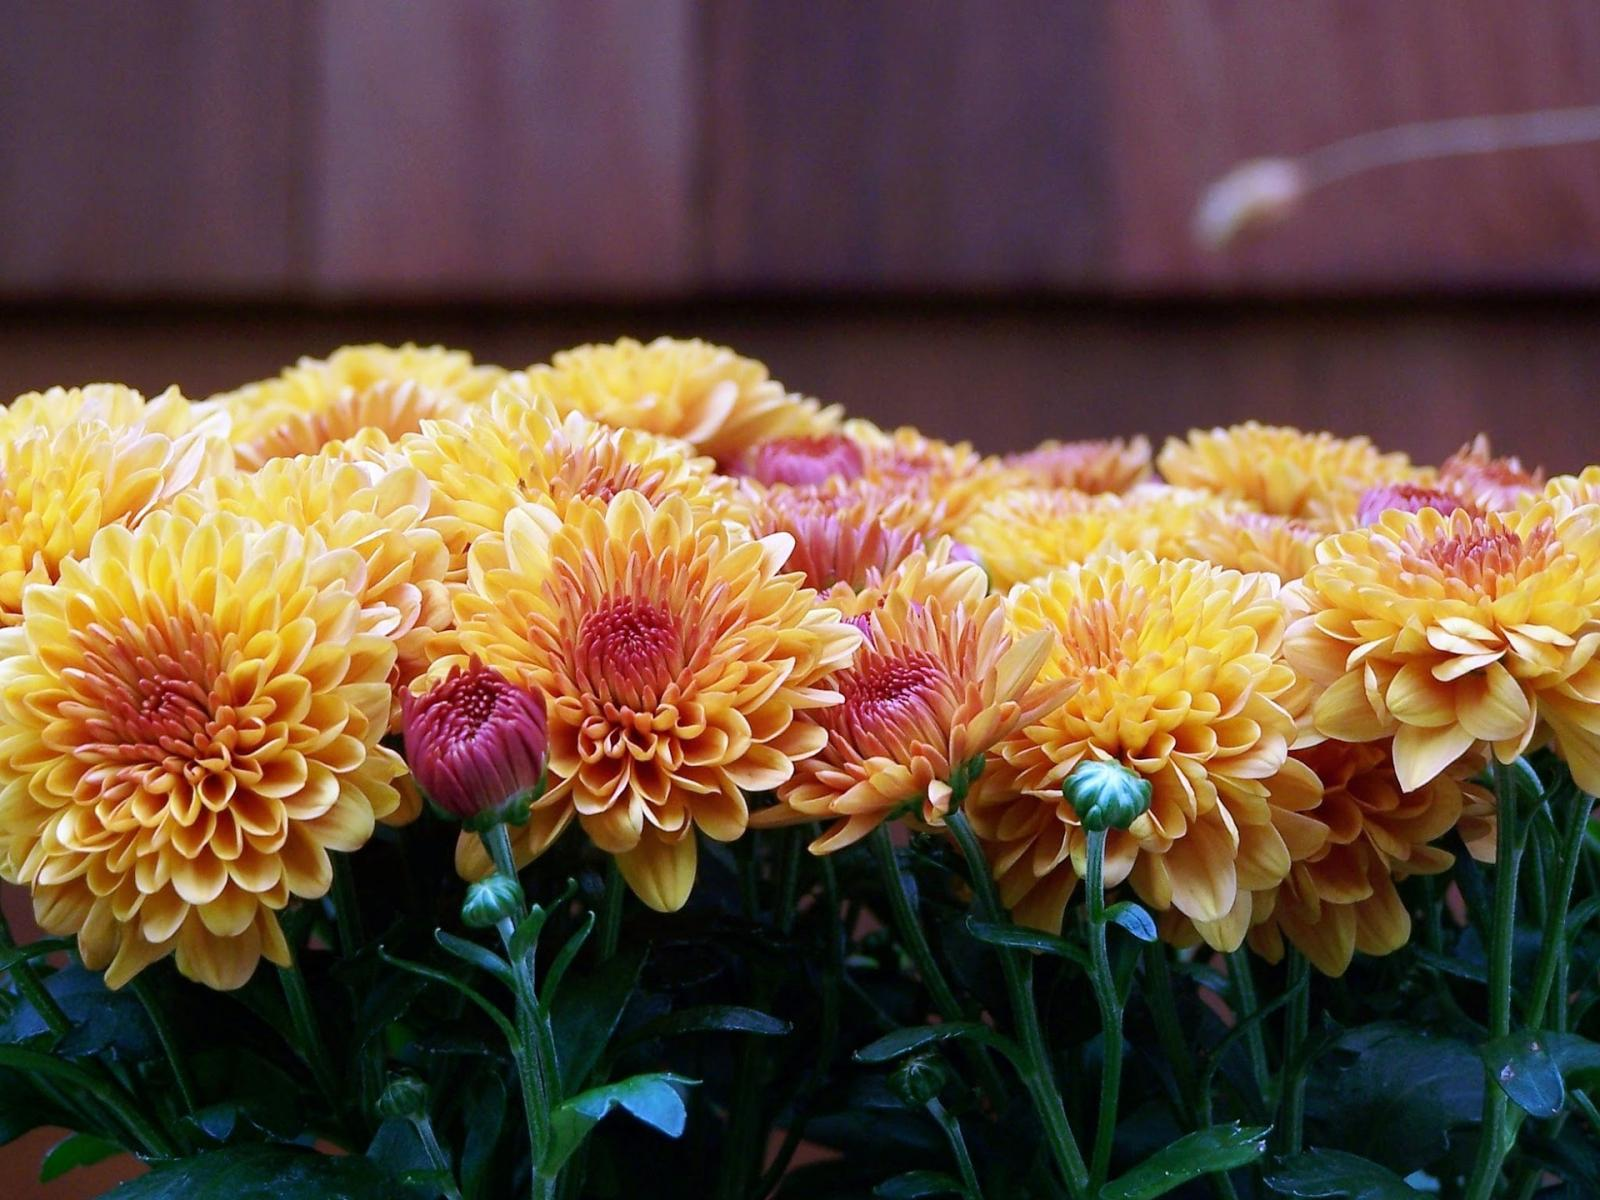 Hardy Mums & other autumn garden oddities